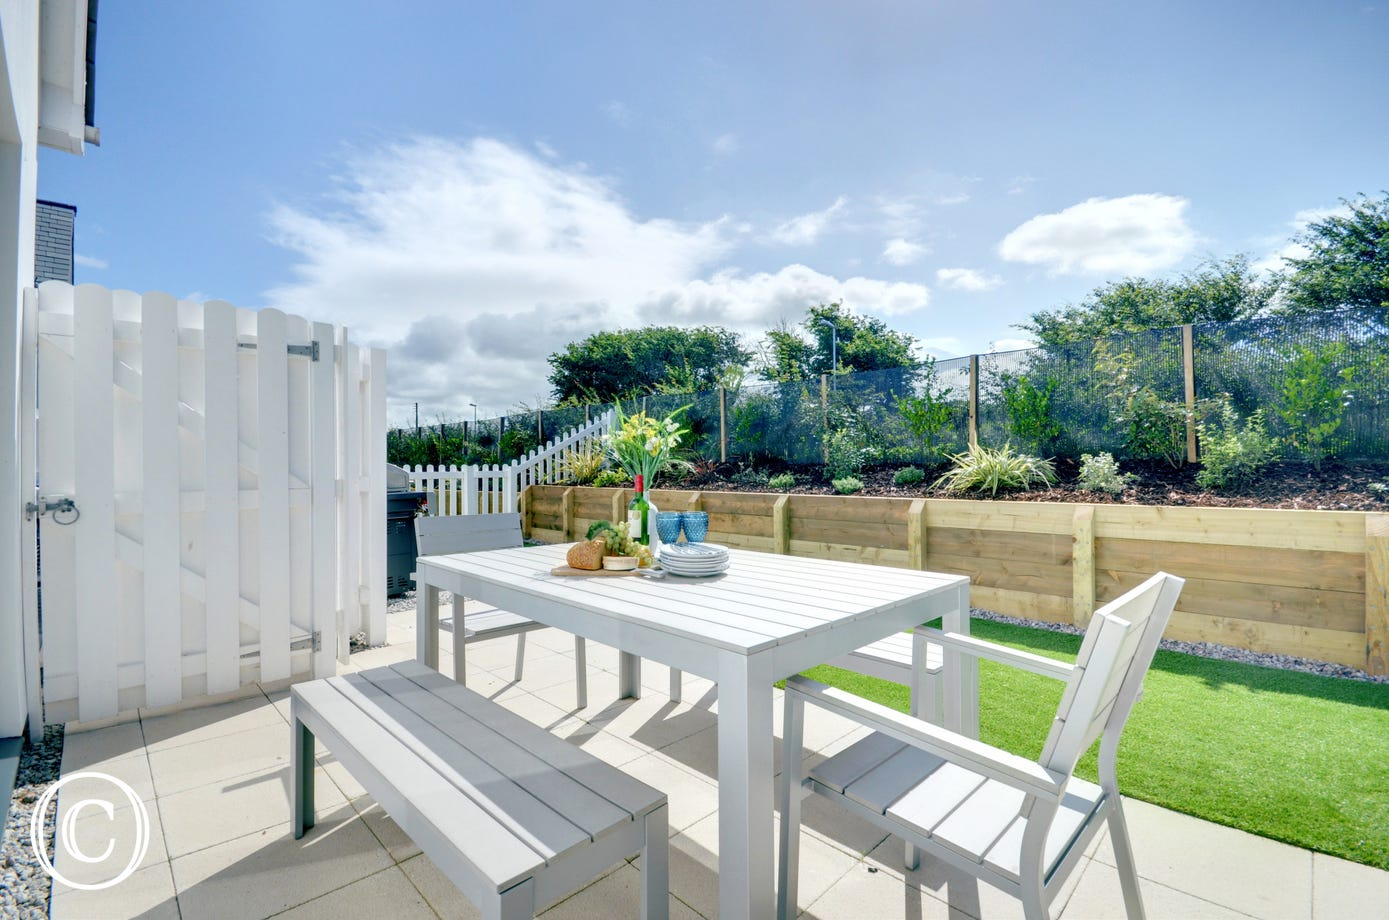 An ideal space to have a BBQ or enjoy a glass of wine at the end of the day